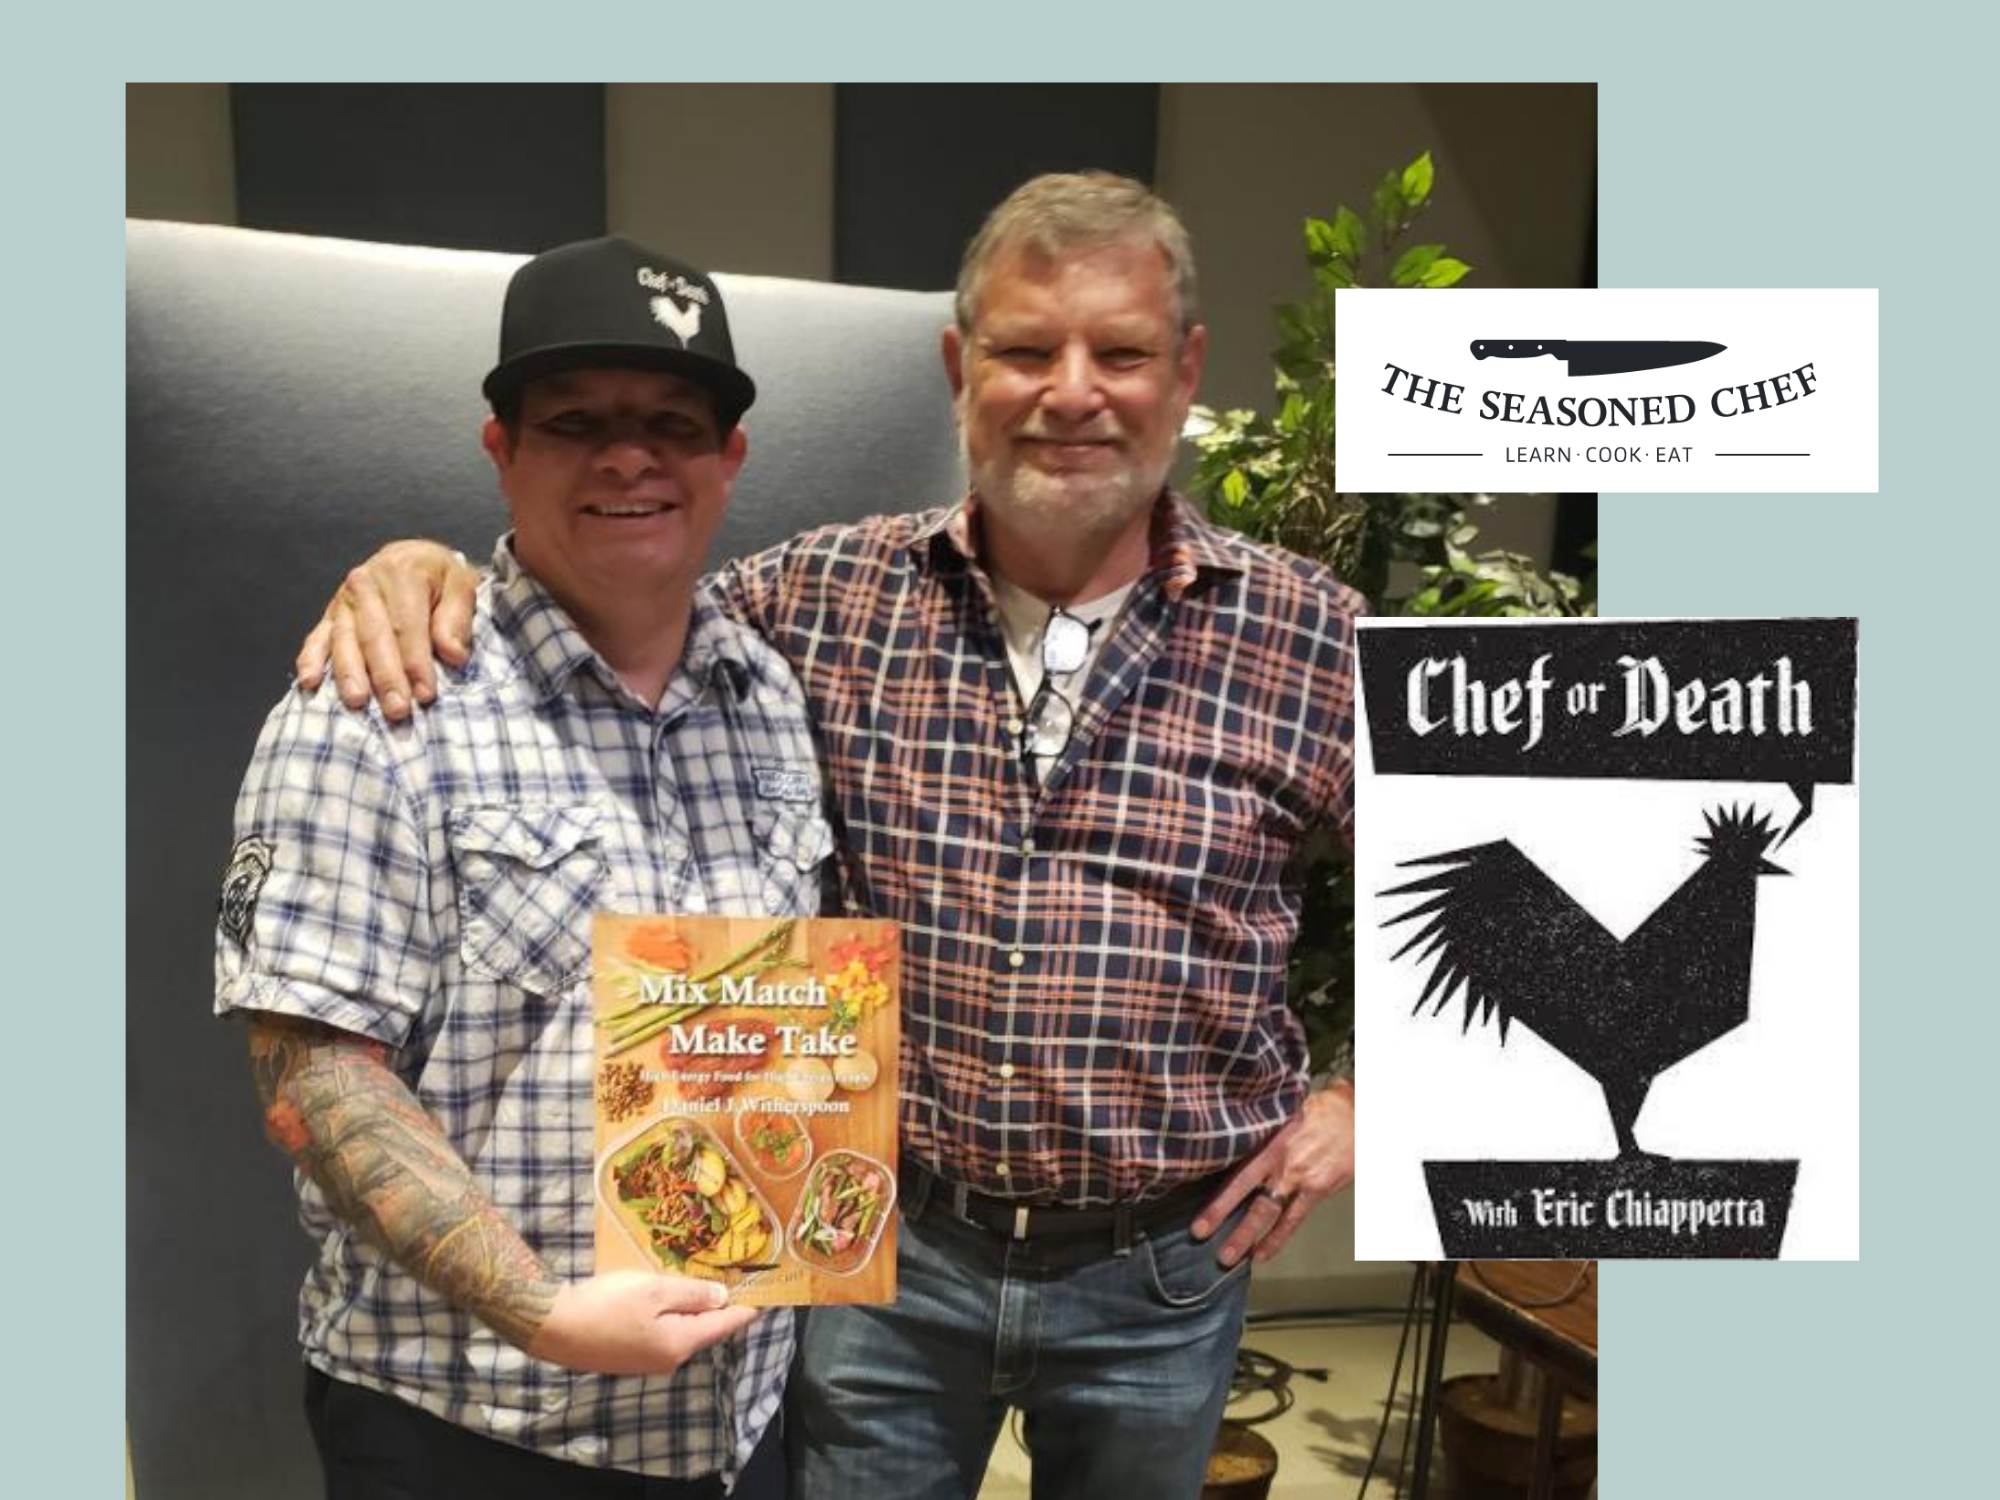 TSC Chef or death (5).png